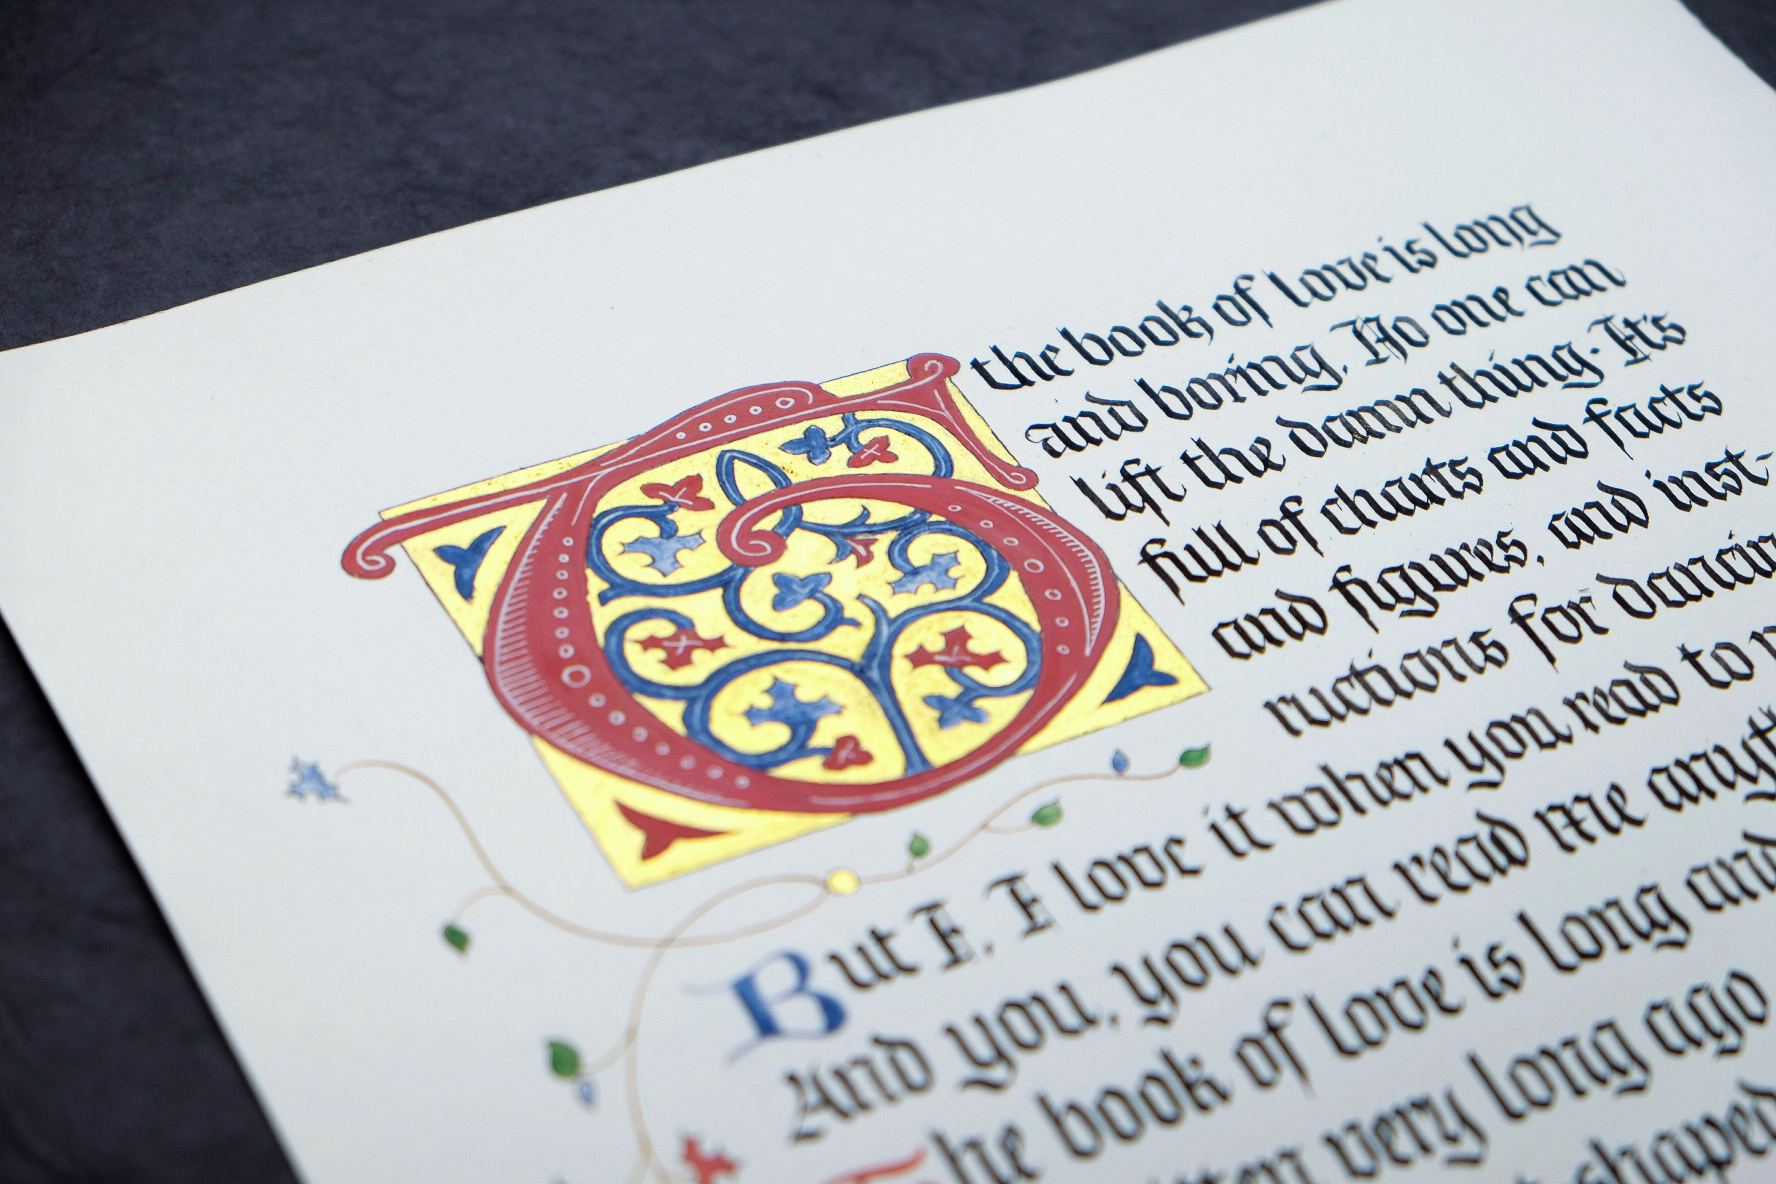 Blackletter manuscript song lyrics with a decorated letter | by www.chavelli.com